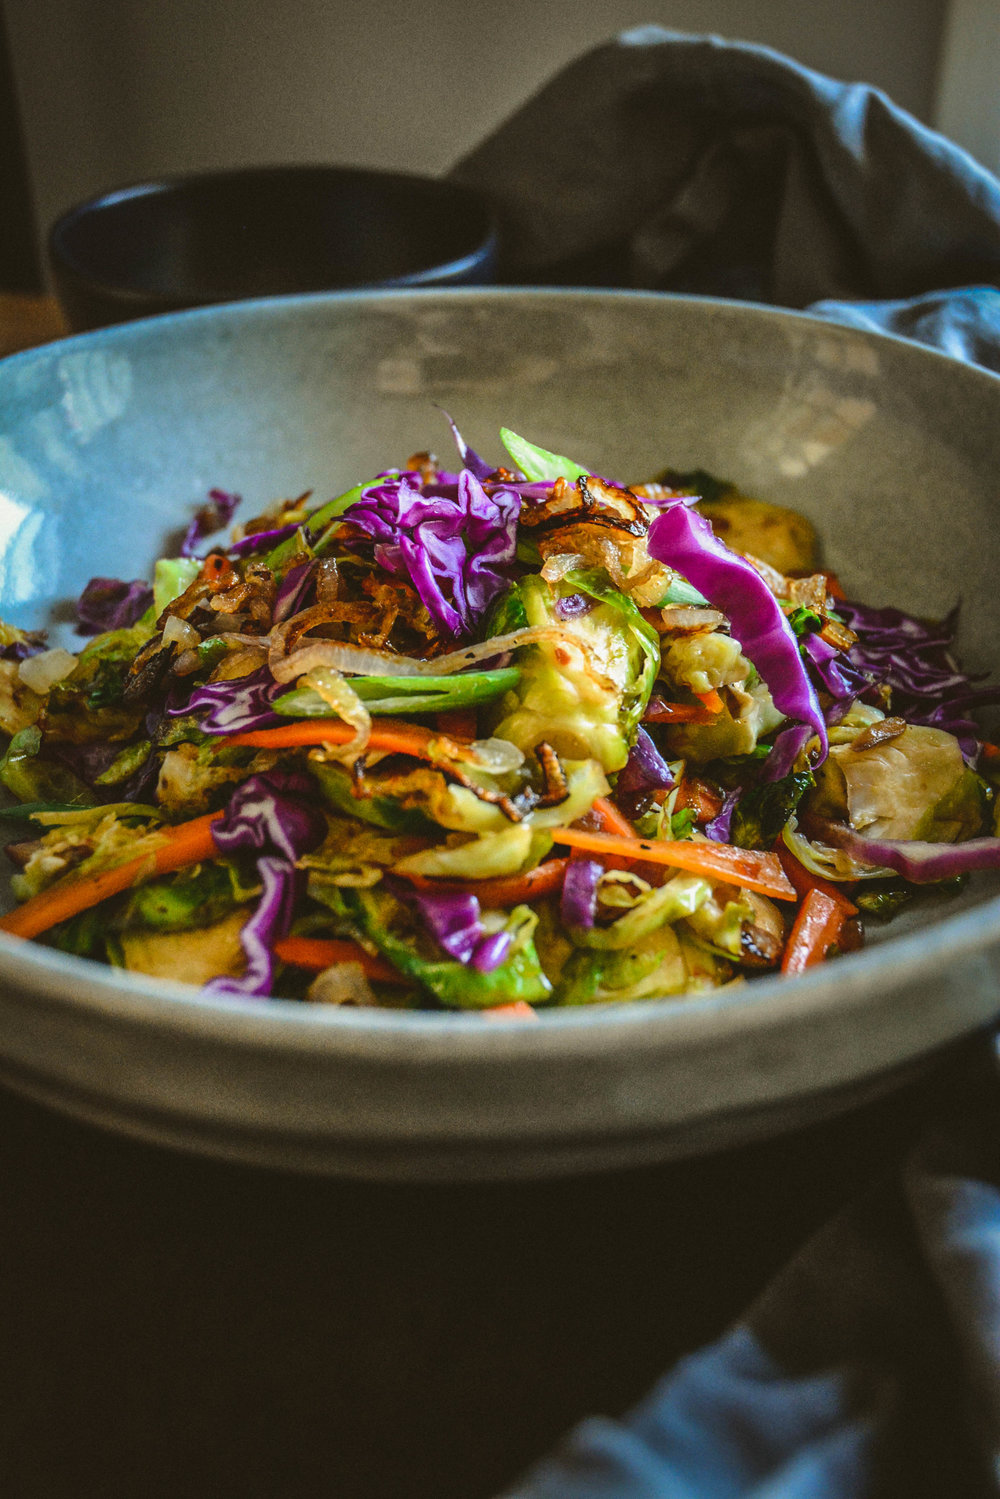 brussels sprouts salad with purple cabbage and sweet chili sauce